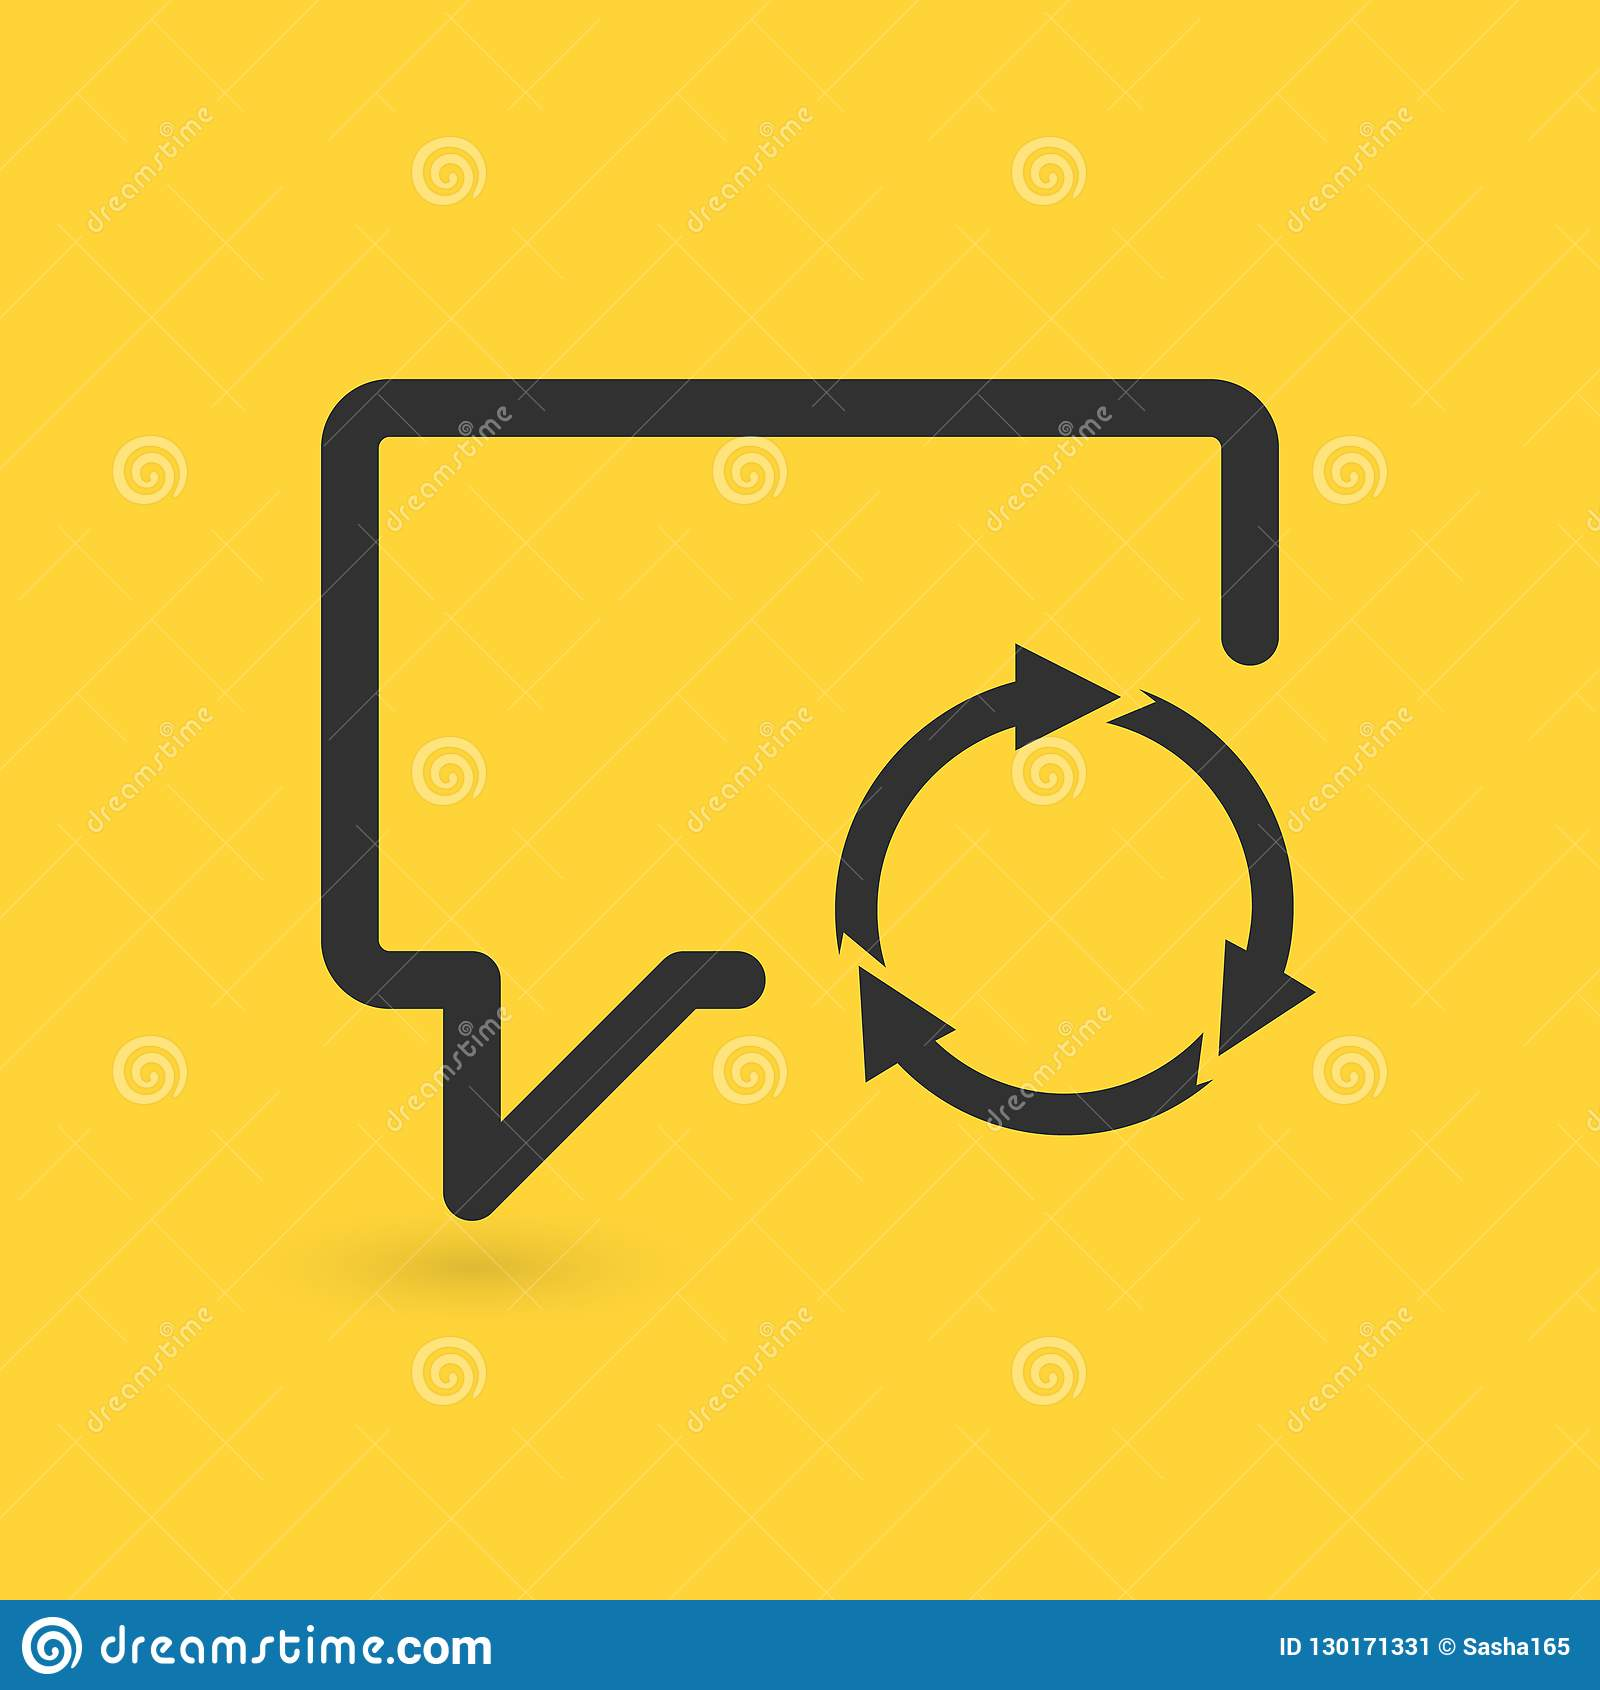 Speech Bubble Refresh icon, three circle arrows. vector illustration isolated on yellow background.